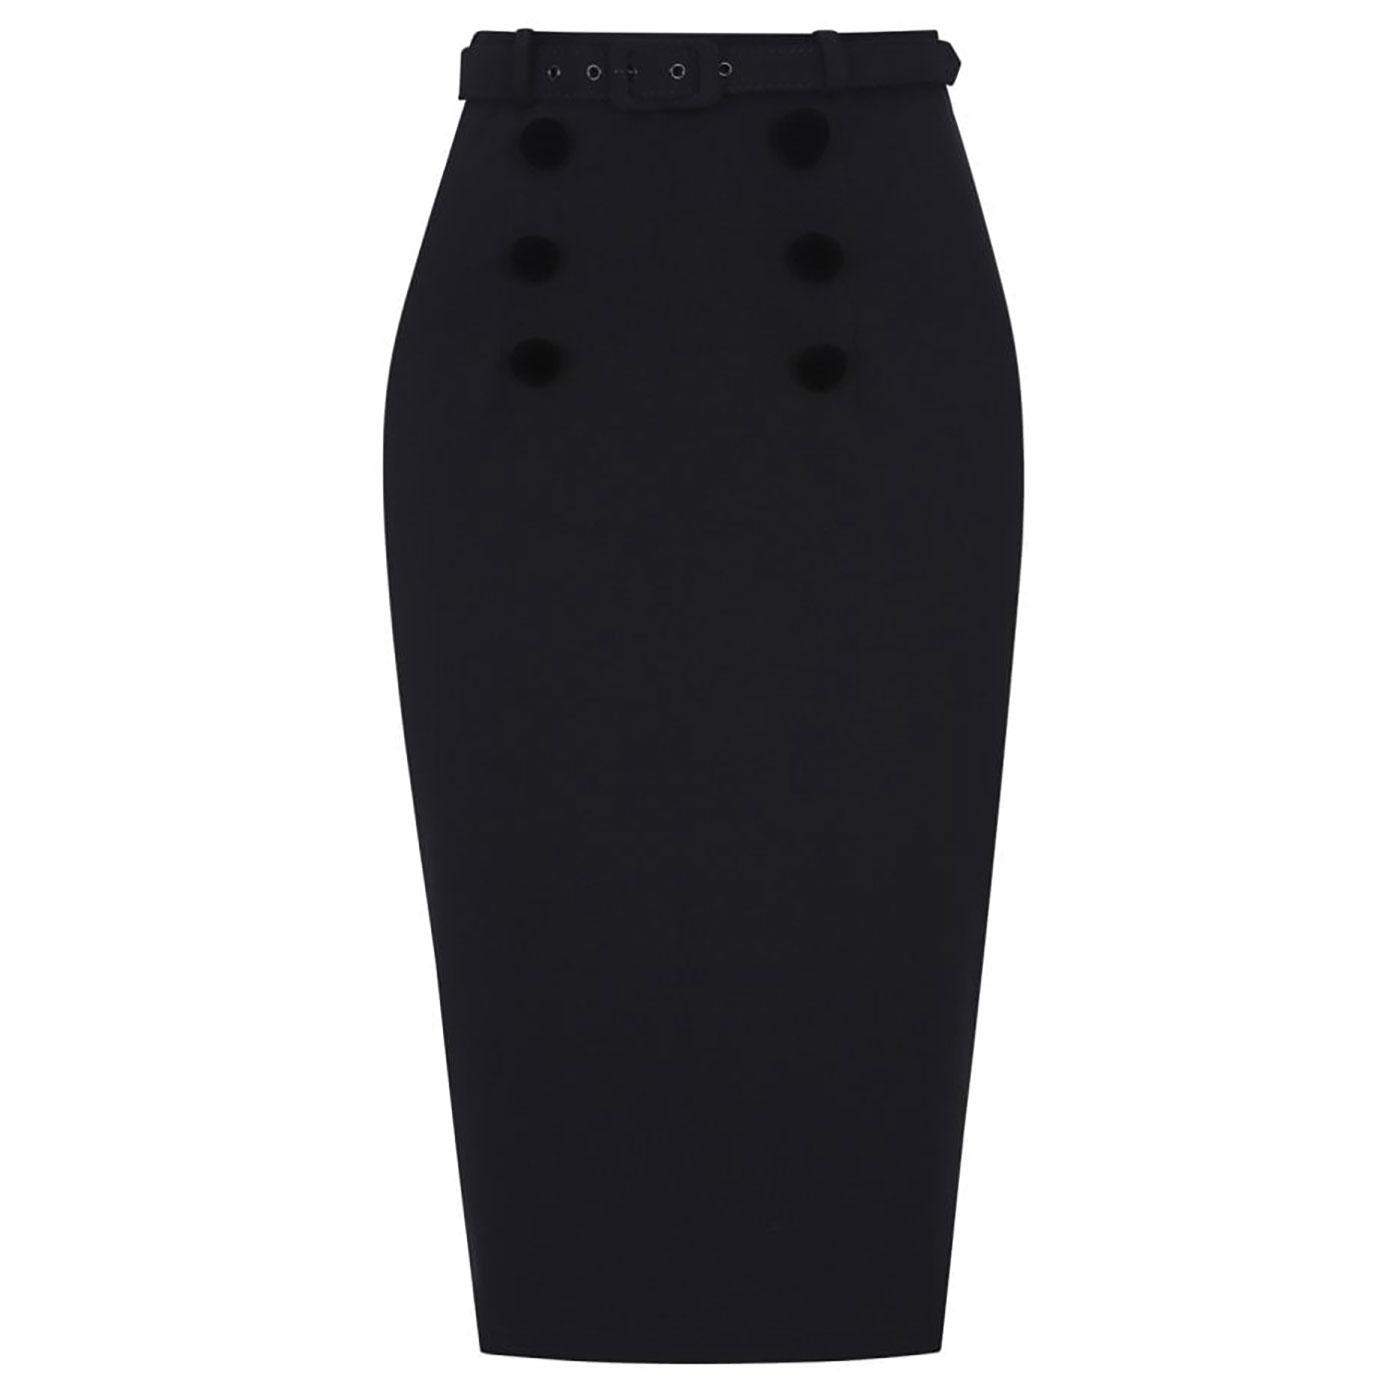 Agatha COLLECTIF Plain 50s Pencil Skirt In Black